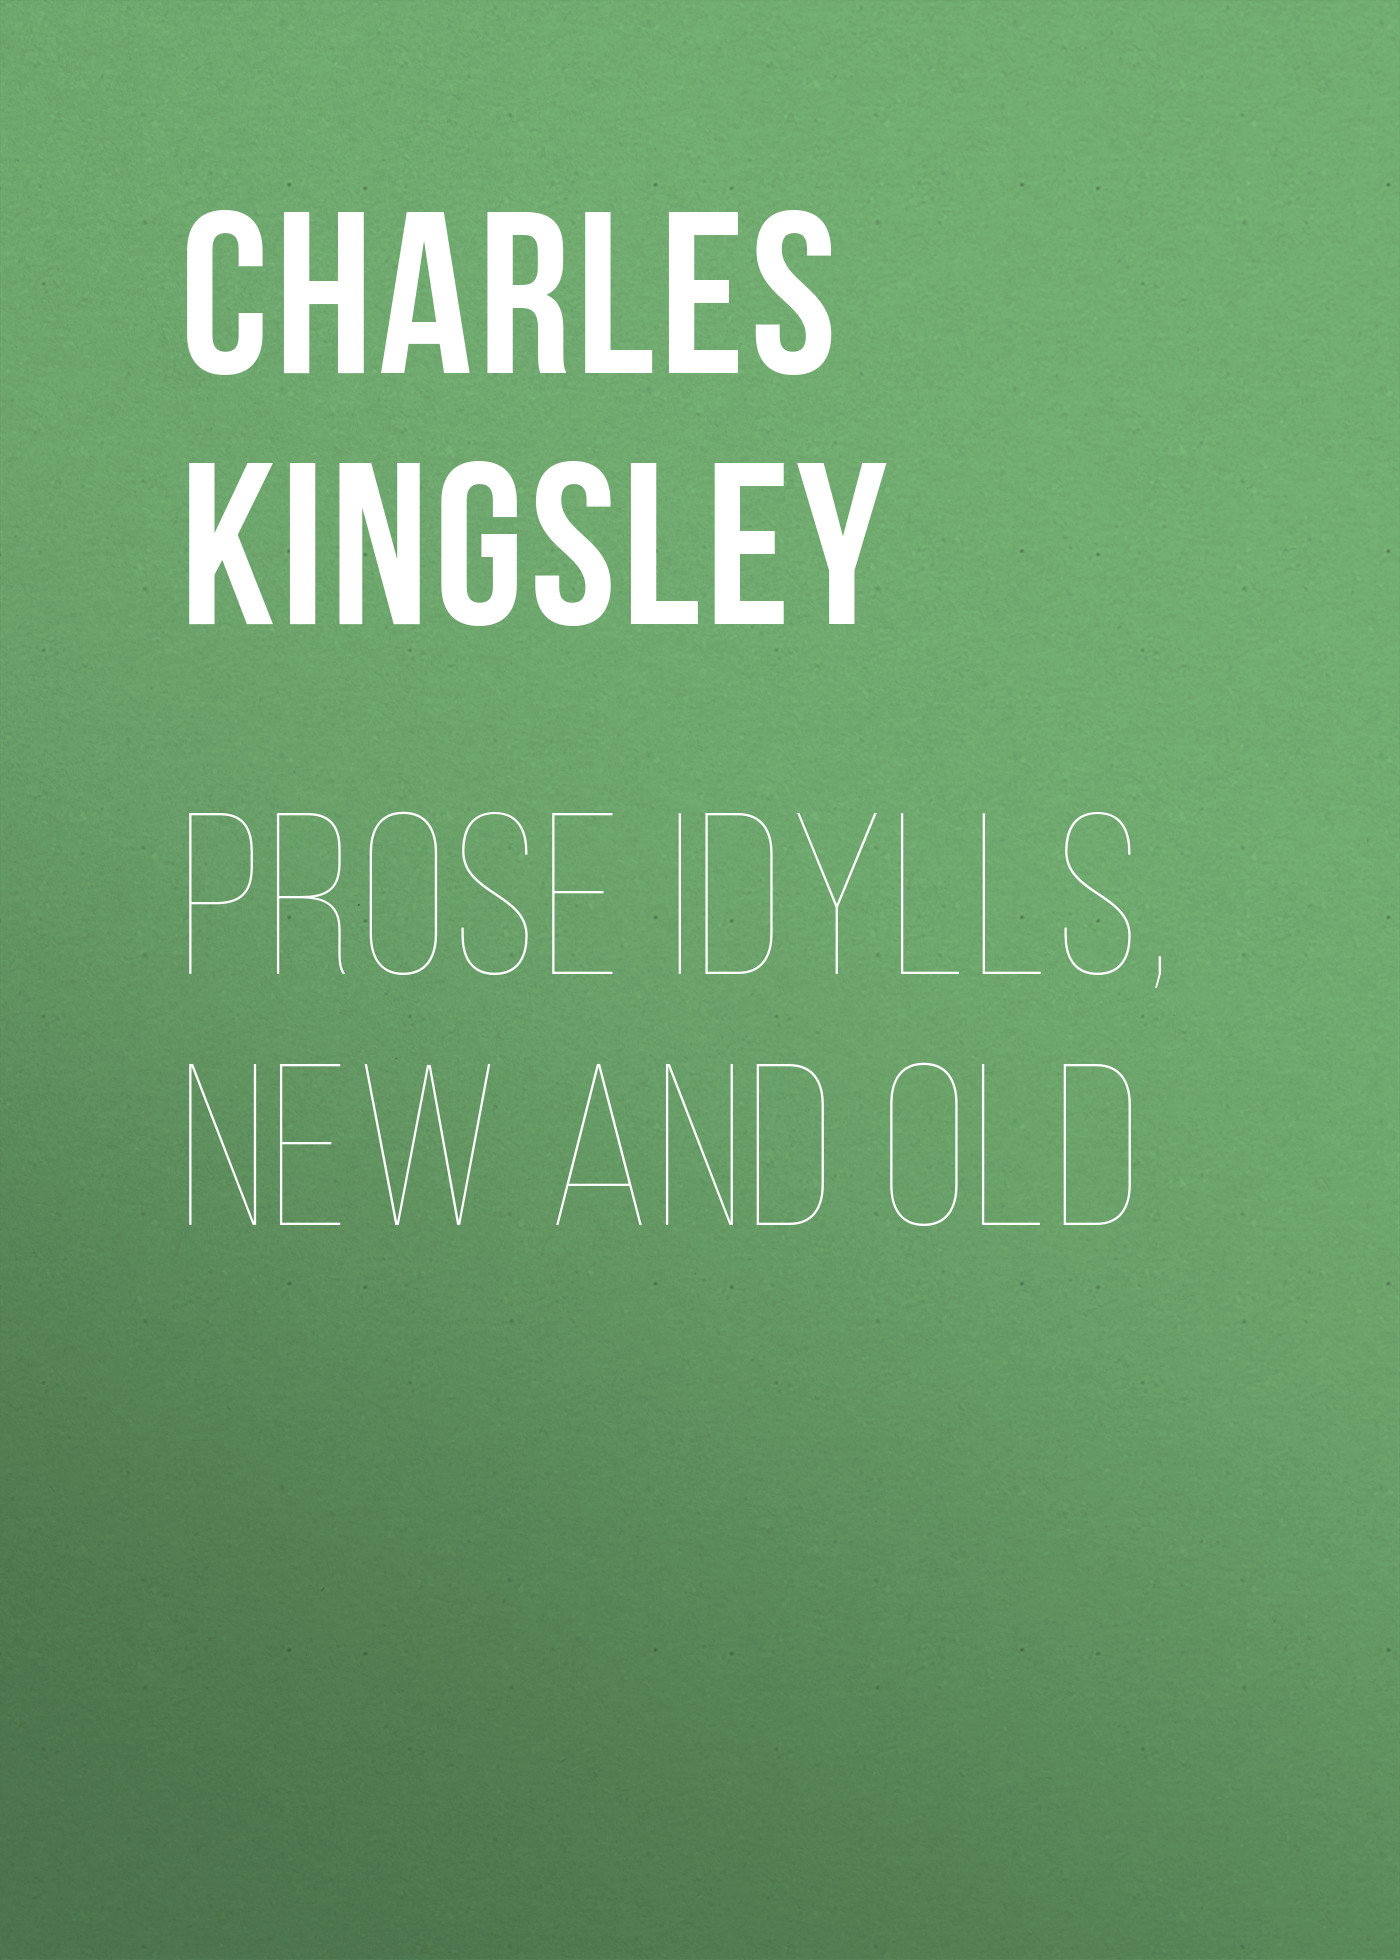 Charles Kingsley Prose Idylls, New and Old paige shippie human cycles poetry and prose